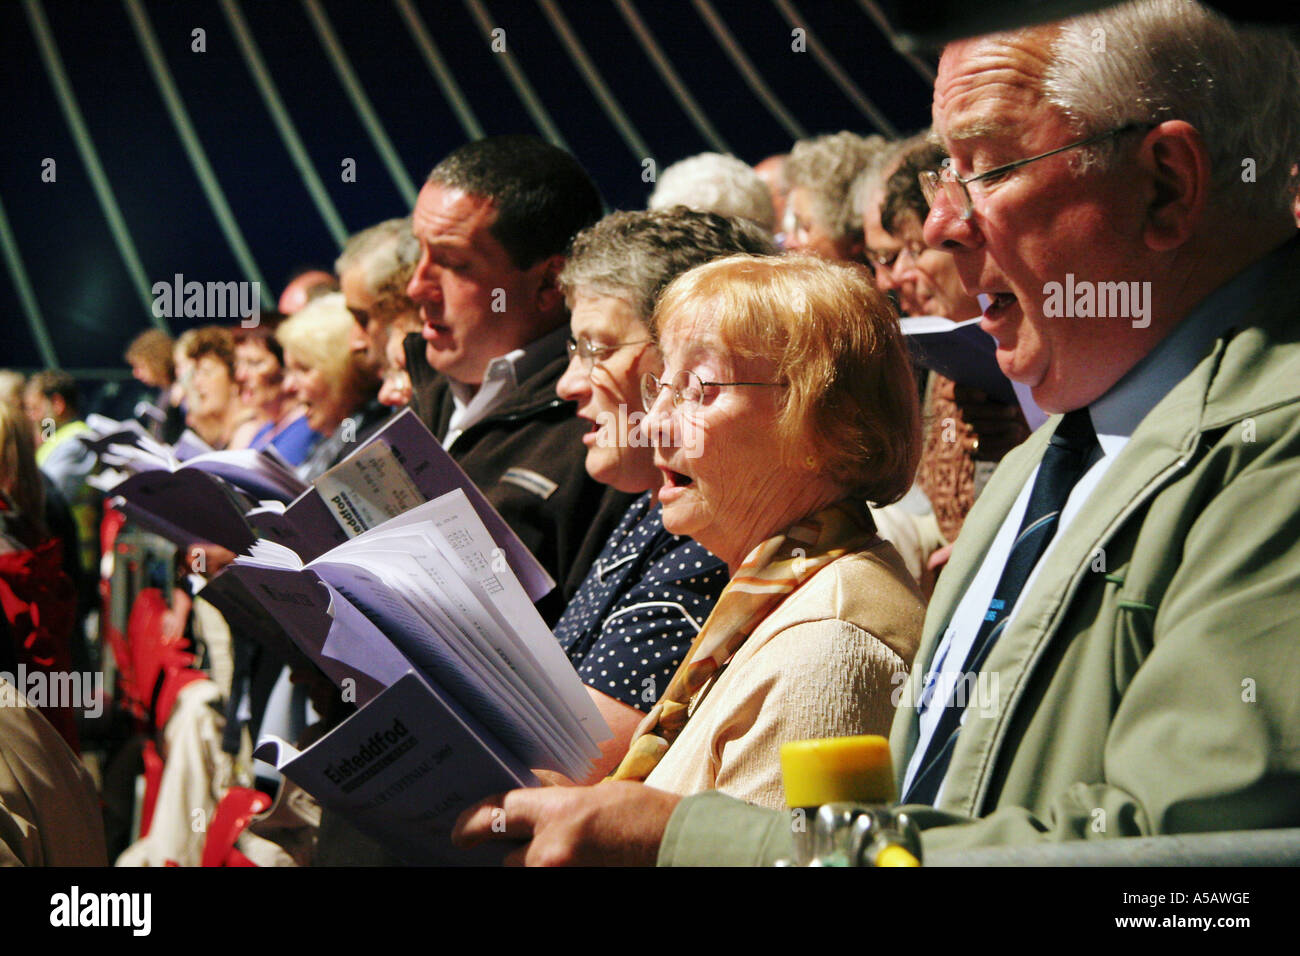 Hymn Singing High Resolution Stock Photography and Images - Alamy